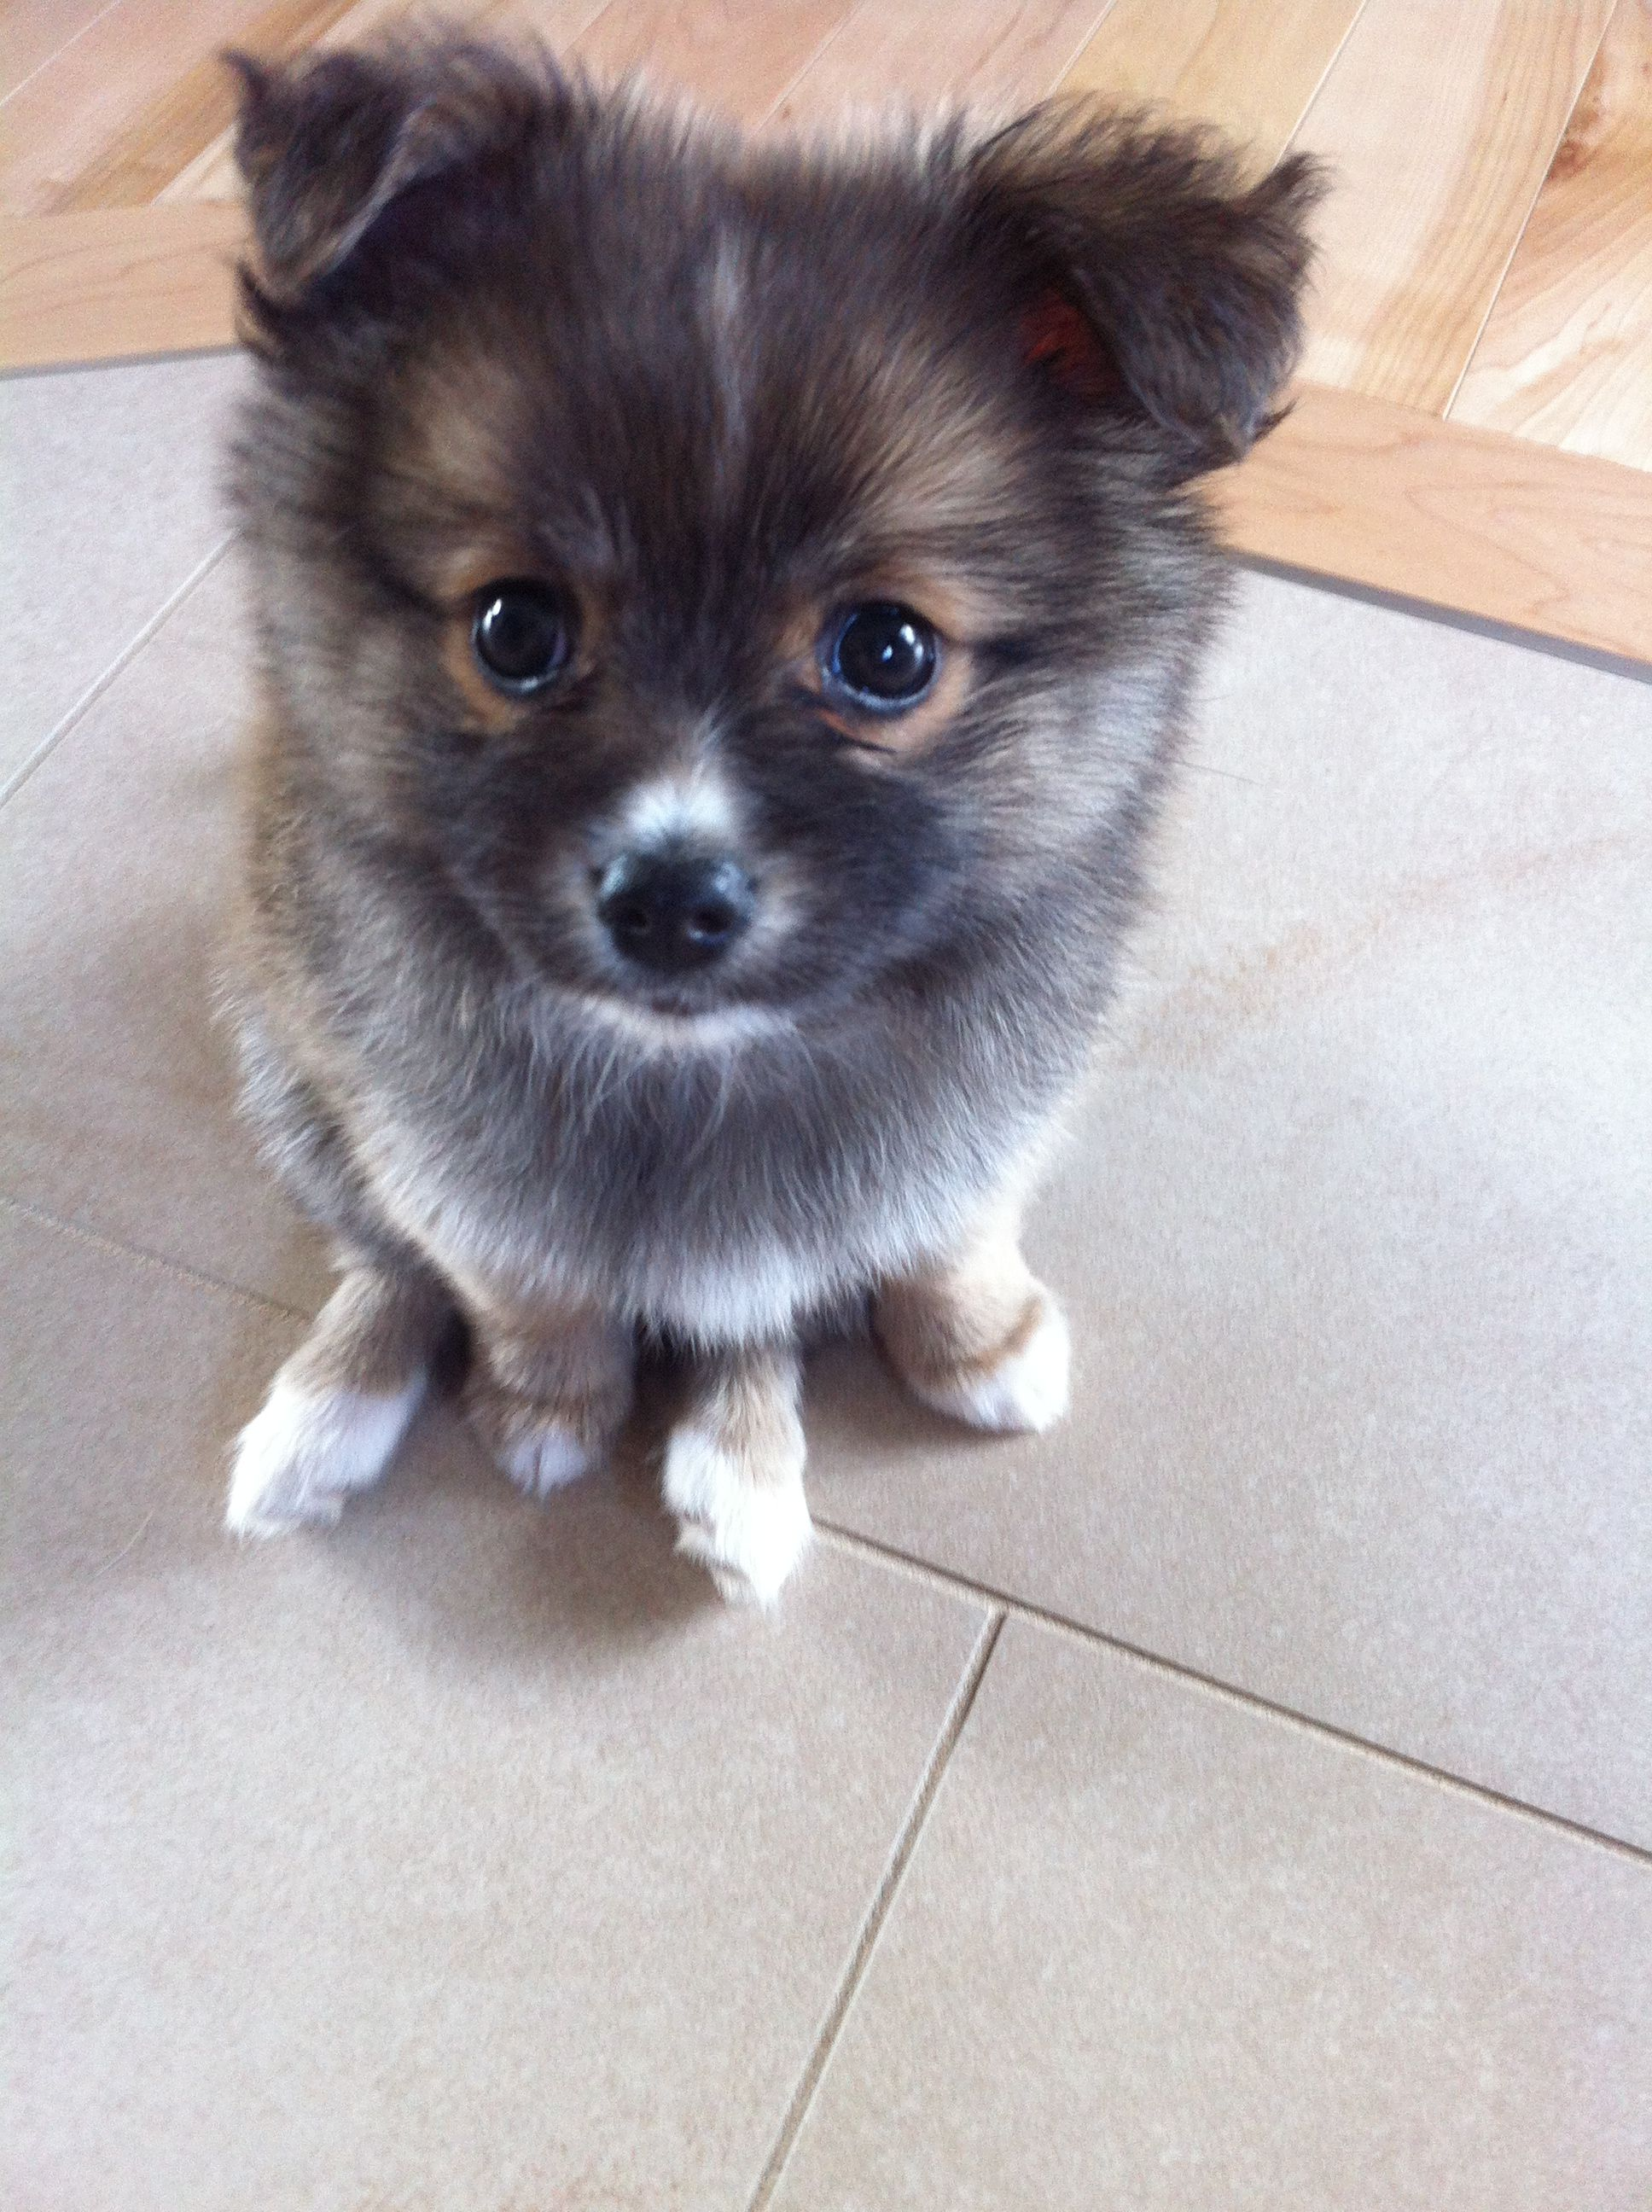 Pomchi Puppy Had A Dog Like This Back At Home In Cali He Was So